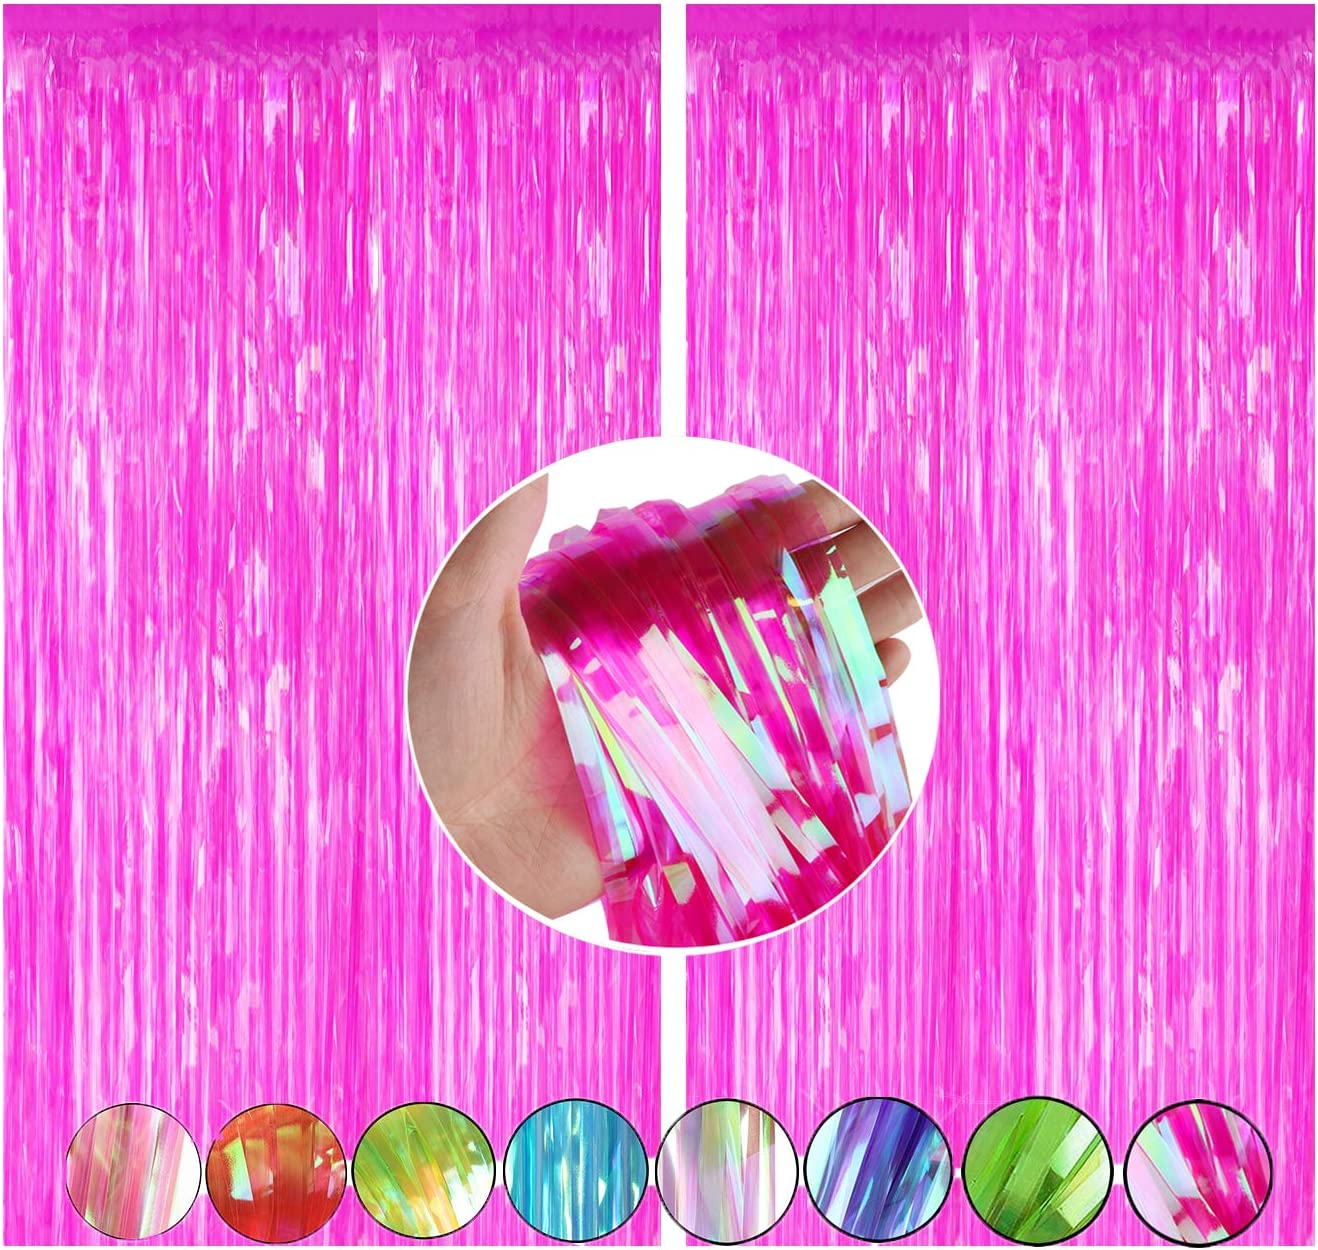 2 Packs 3.2ft x 8.3ft Shimmer Hot Pink Metallic Tinsel Curtain Shiny Foil Fringe Curtain Photo Backdrop for Girls Birthday Party Baby Shower Graduation Spa Make Up Party Door Windows Wall Decoration